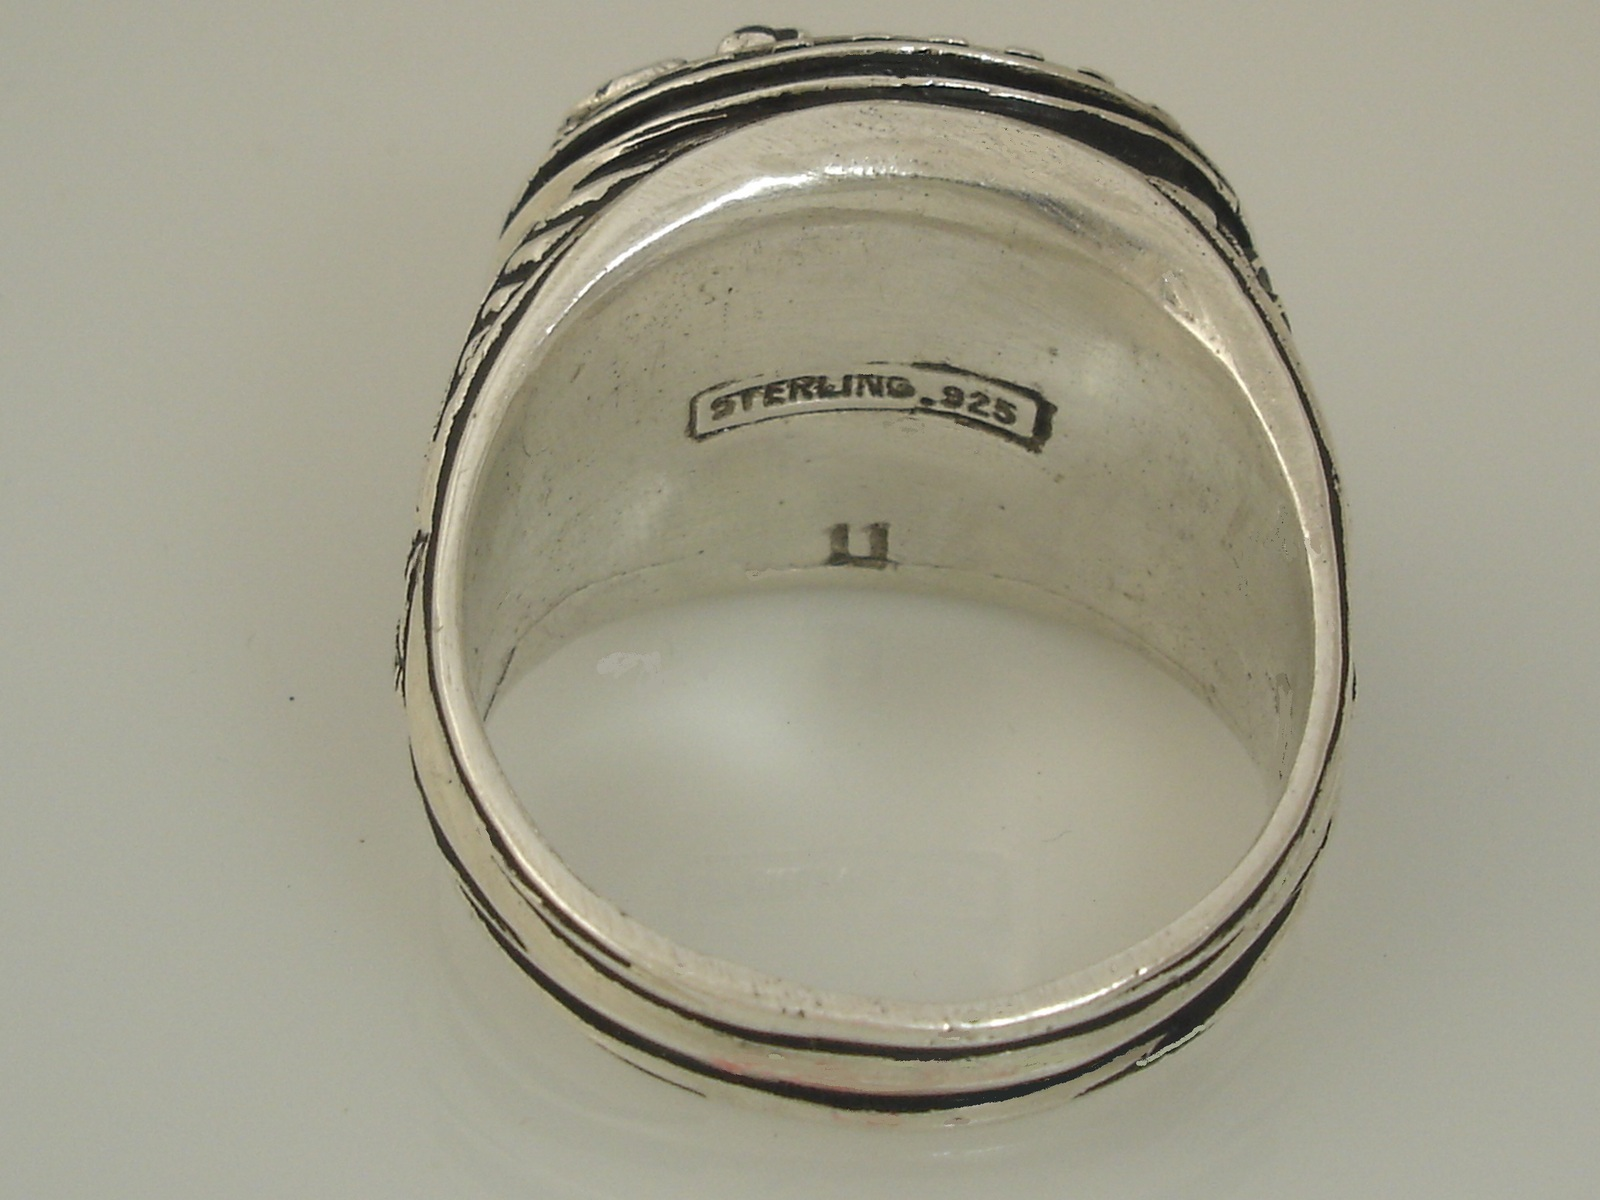 American Eagle,Men's Coin ring,,,,Sterling Silver,Lge.